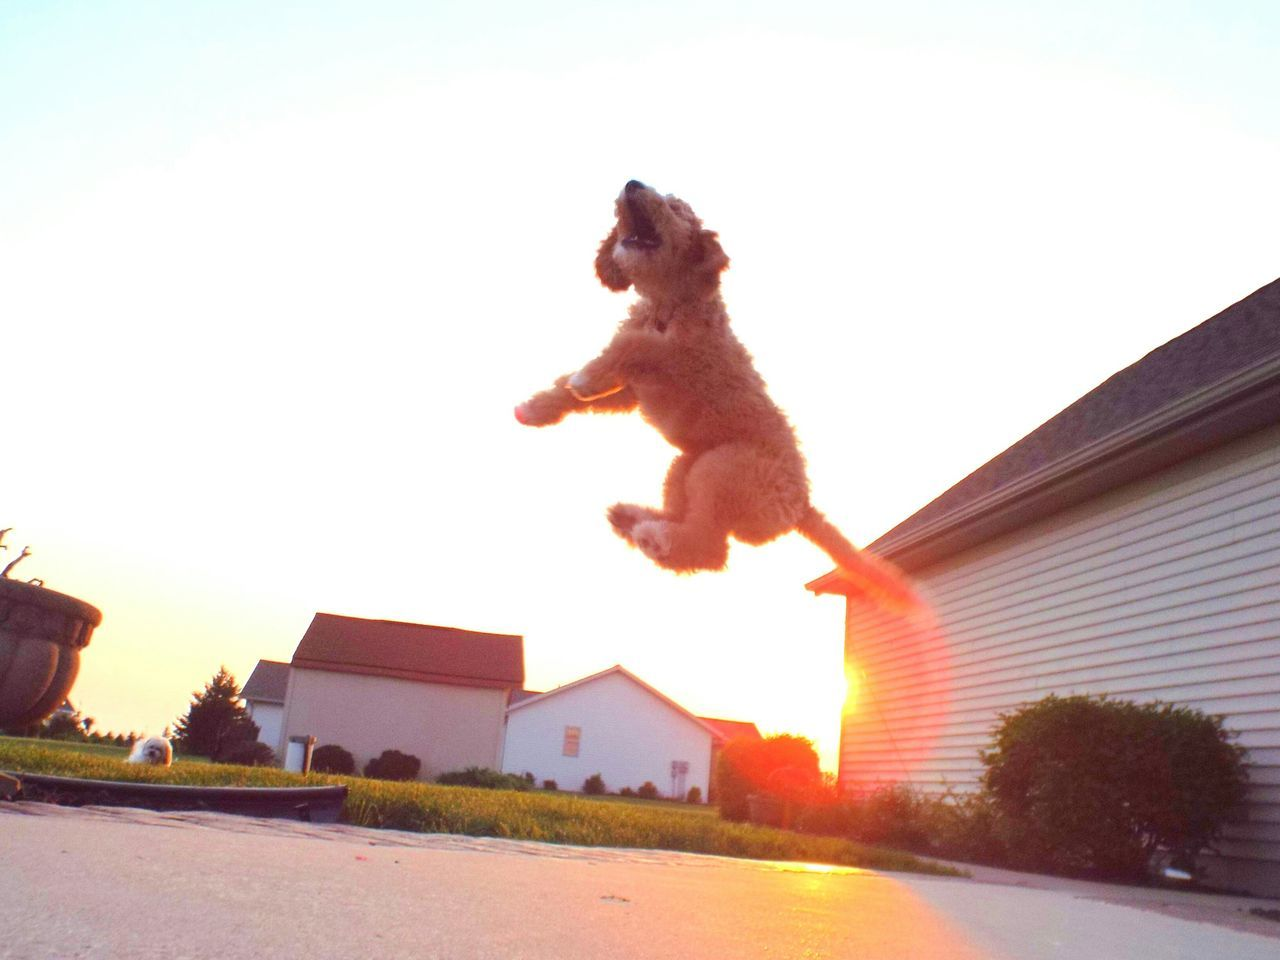 Low Angle View Of Jumping Dog By Houses Against Clear Sky At Sunset